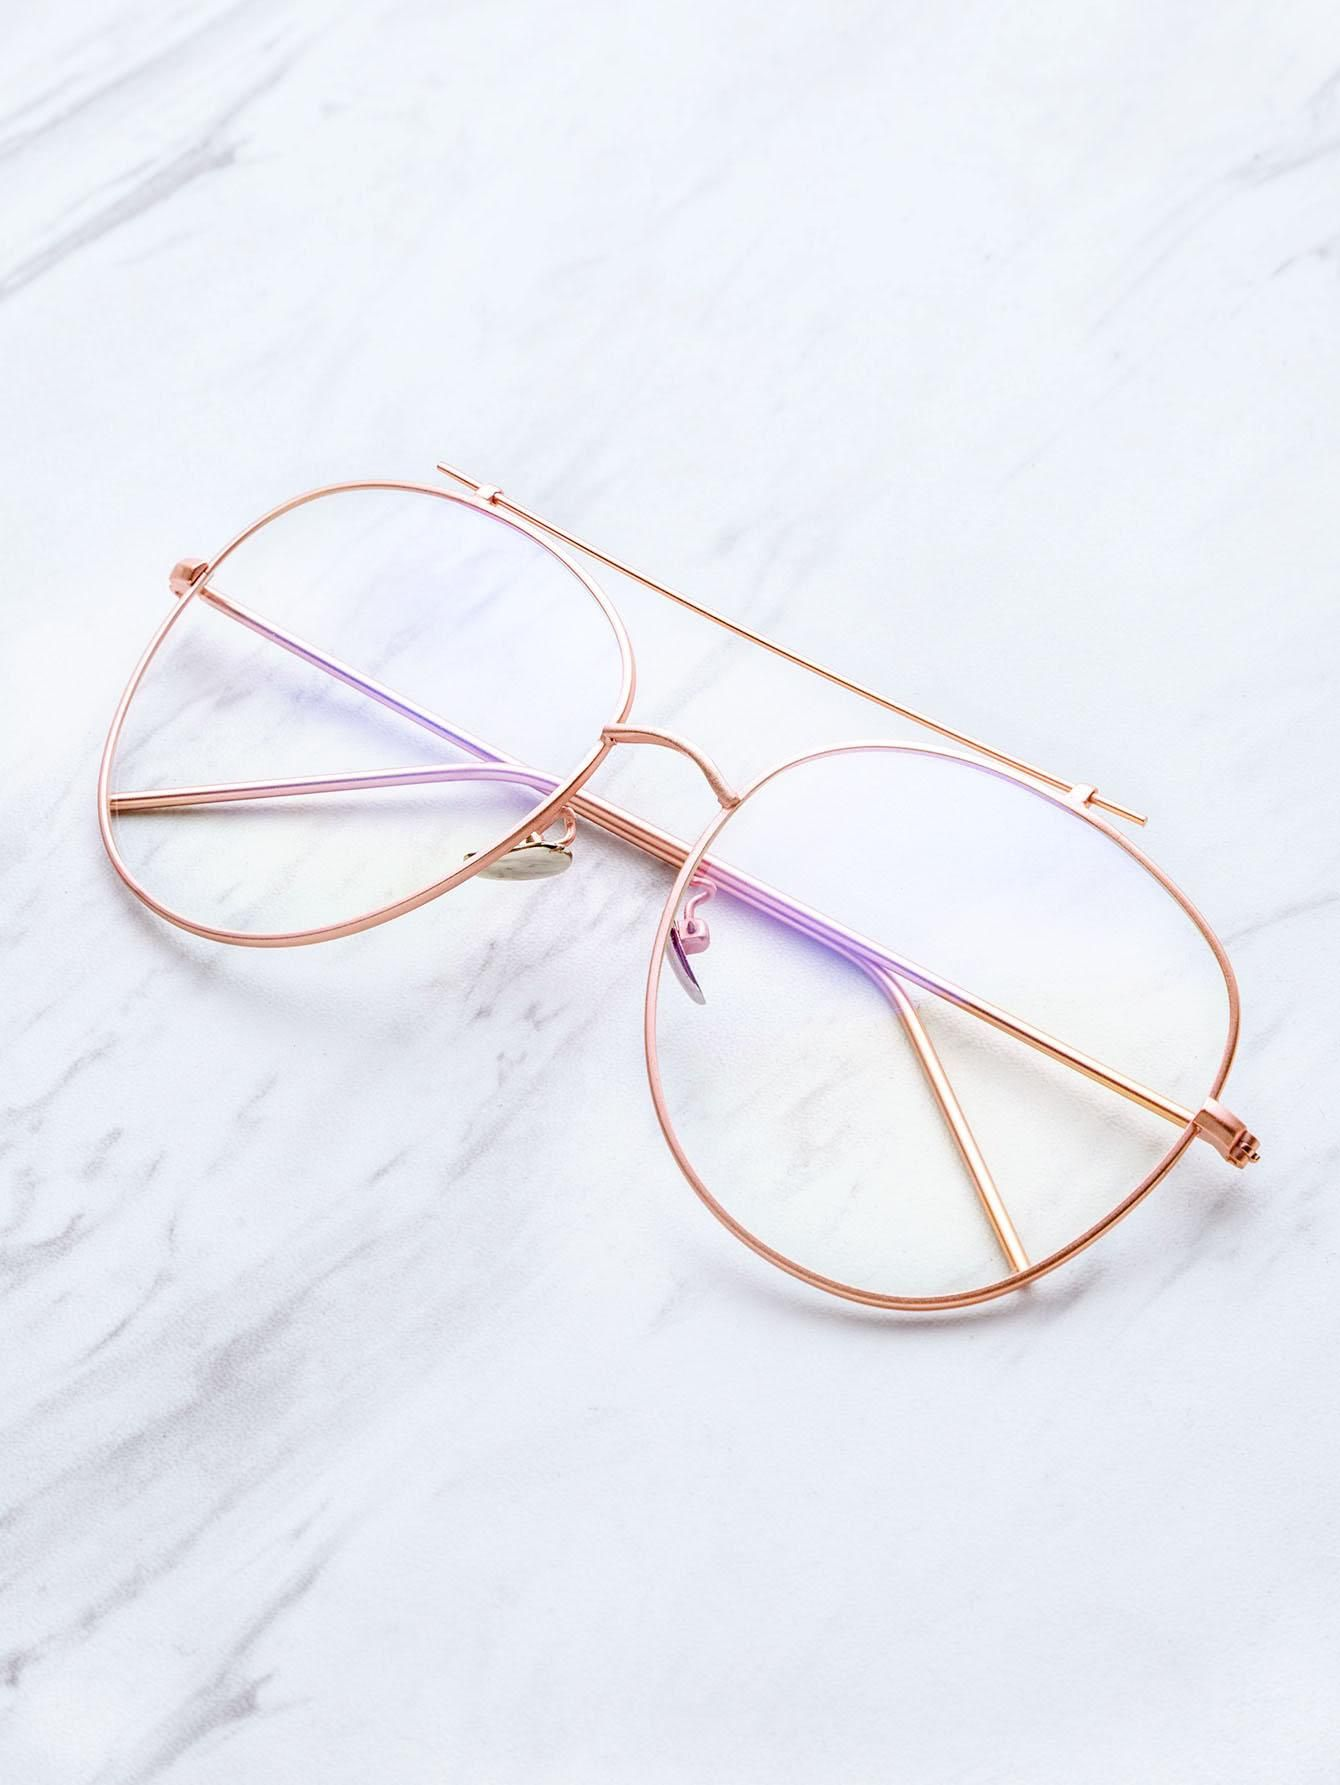 fed9de901ac SheIn - SheIn Rose Gold Frame Clear Lens Double Bridge Glasses - AdoreWe.com